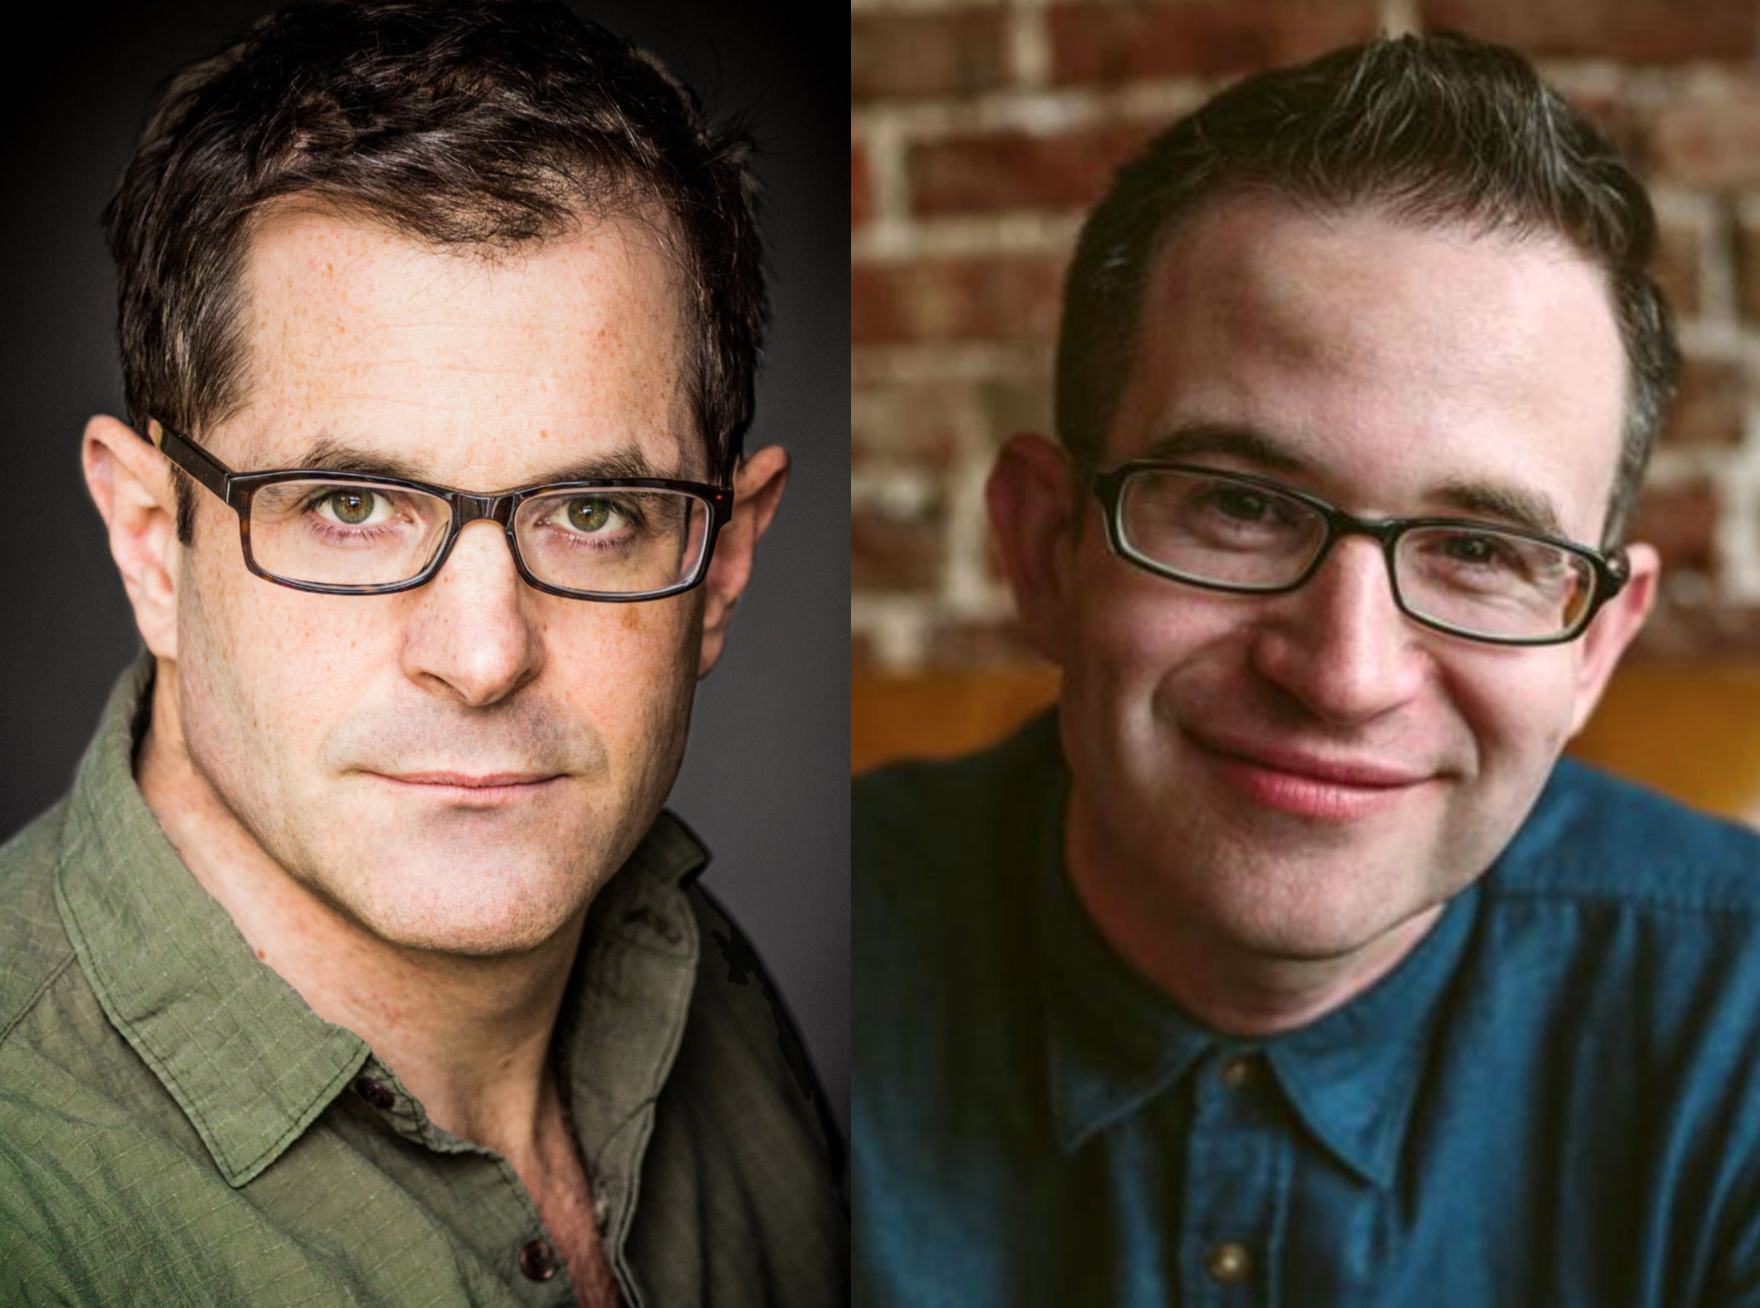 michael-matus-george-rae-full-cast-announced-for-sondheim-s-the-frogs